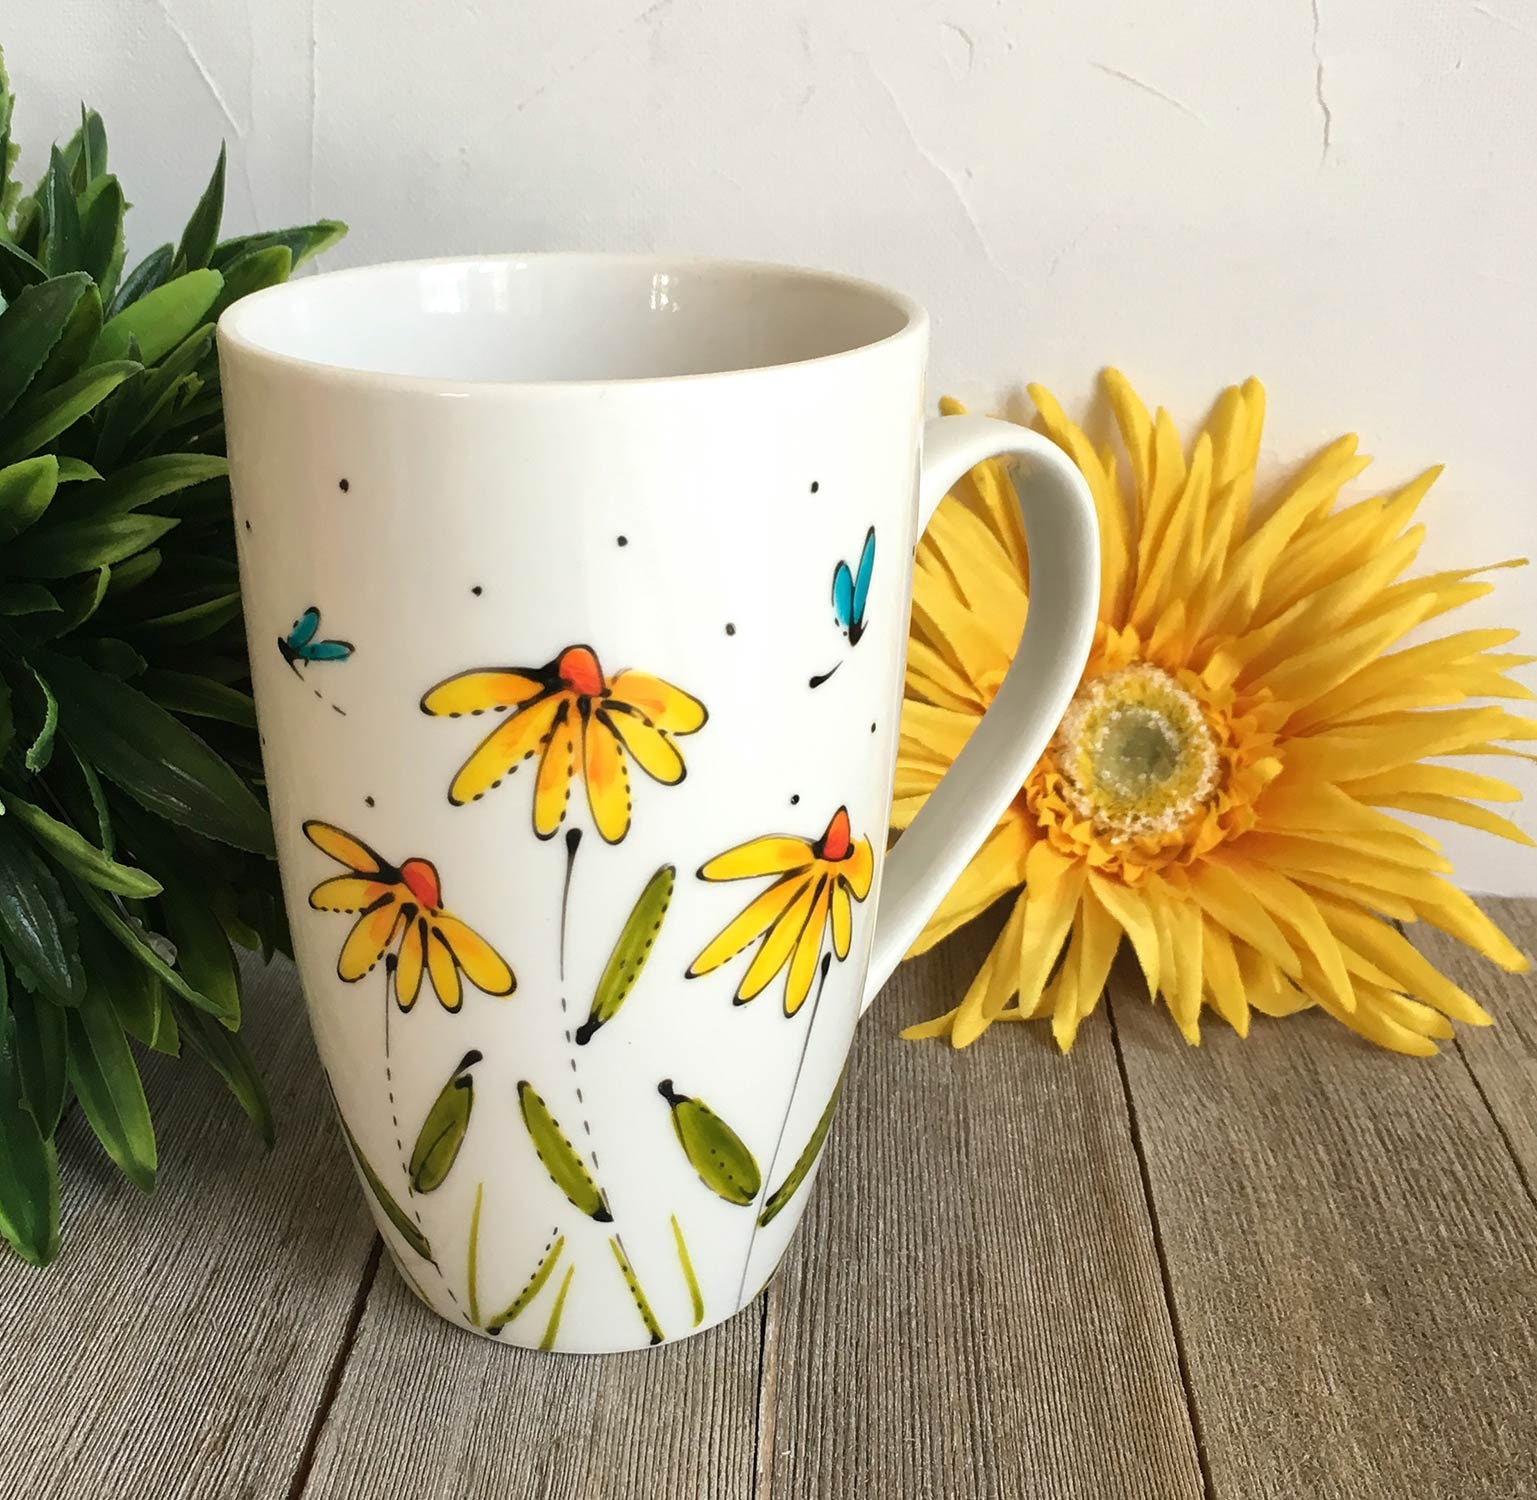 541de8f18d1 Flower coffee mug, Porcelain, yellow daisy